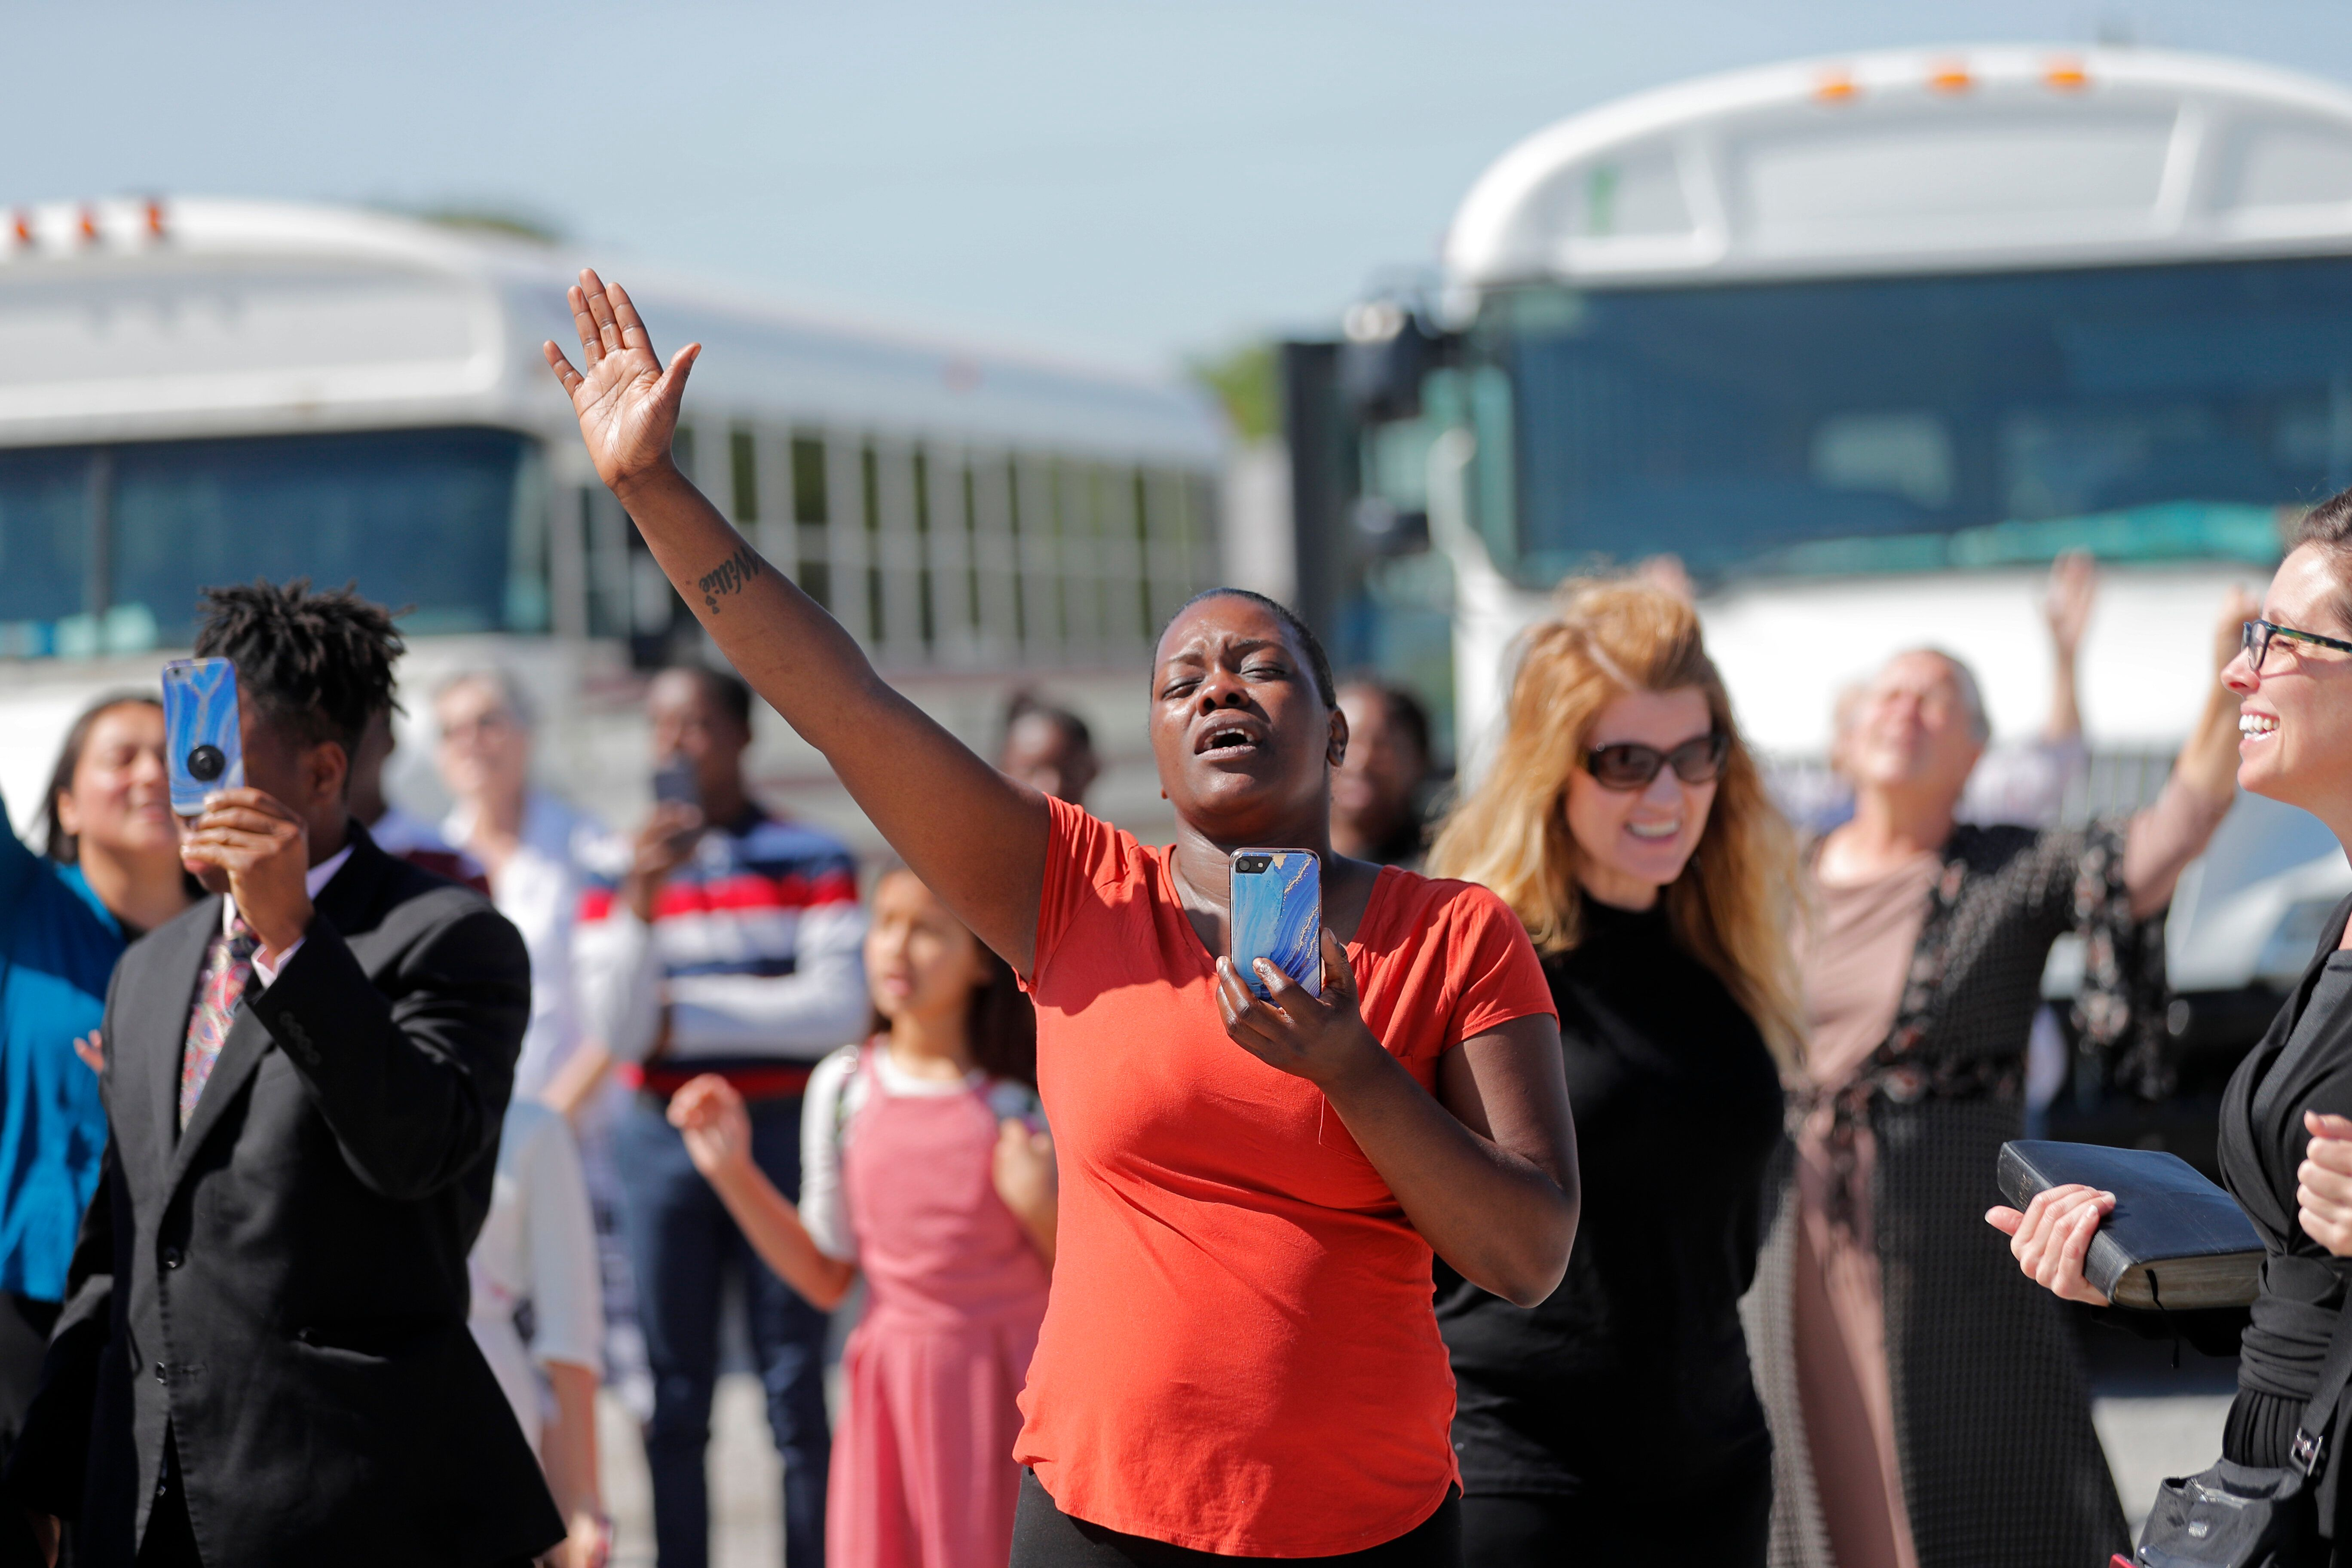 Members of the Life Tabernacle Church, as they wait for Spell to leave the East Baton Rouge Parish jail on April 21, followin